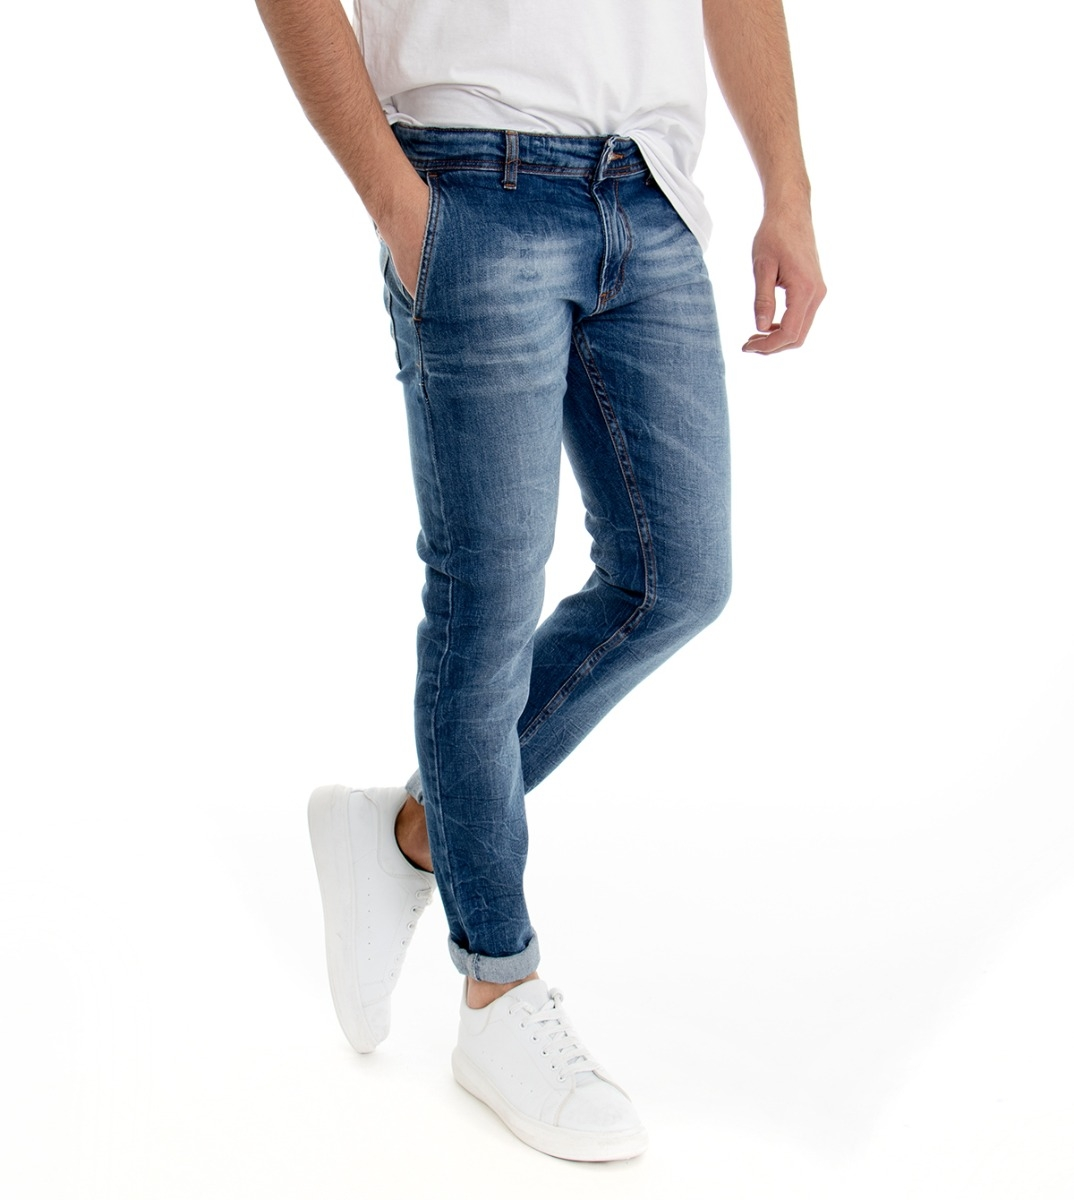 14 Best stone washed images | Fashion, Jeans, Athletic fit jeans